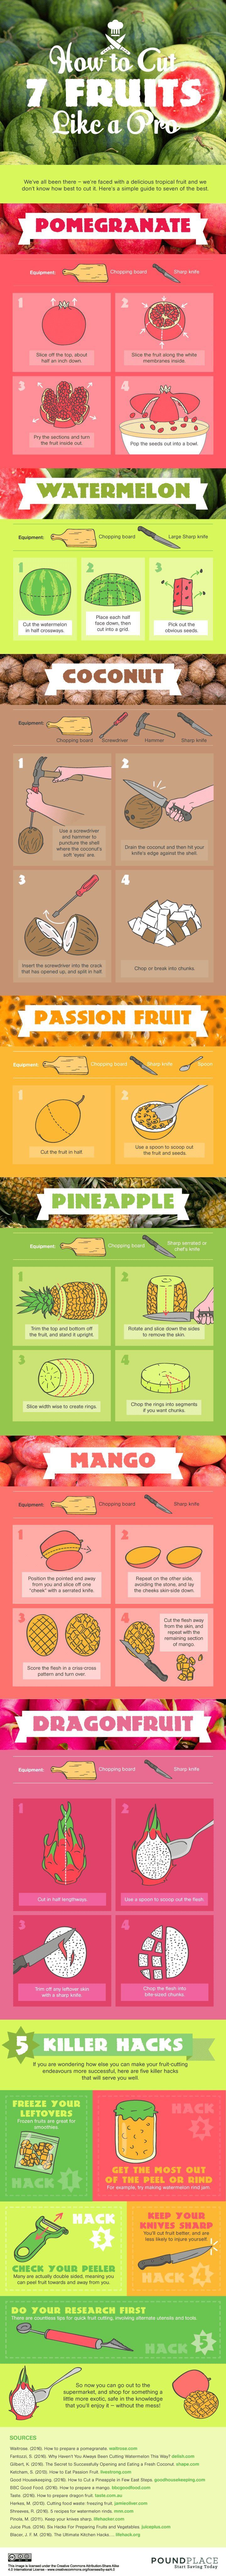 How to Cut-7 Fruits Like a Pro -- pomegranate, watermelon, coconut, passion fruit, pineapple, mango and dragon fruit. It's easy once you know the tricks.